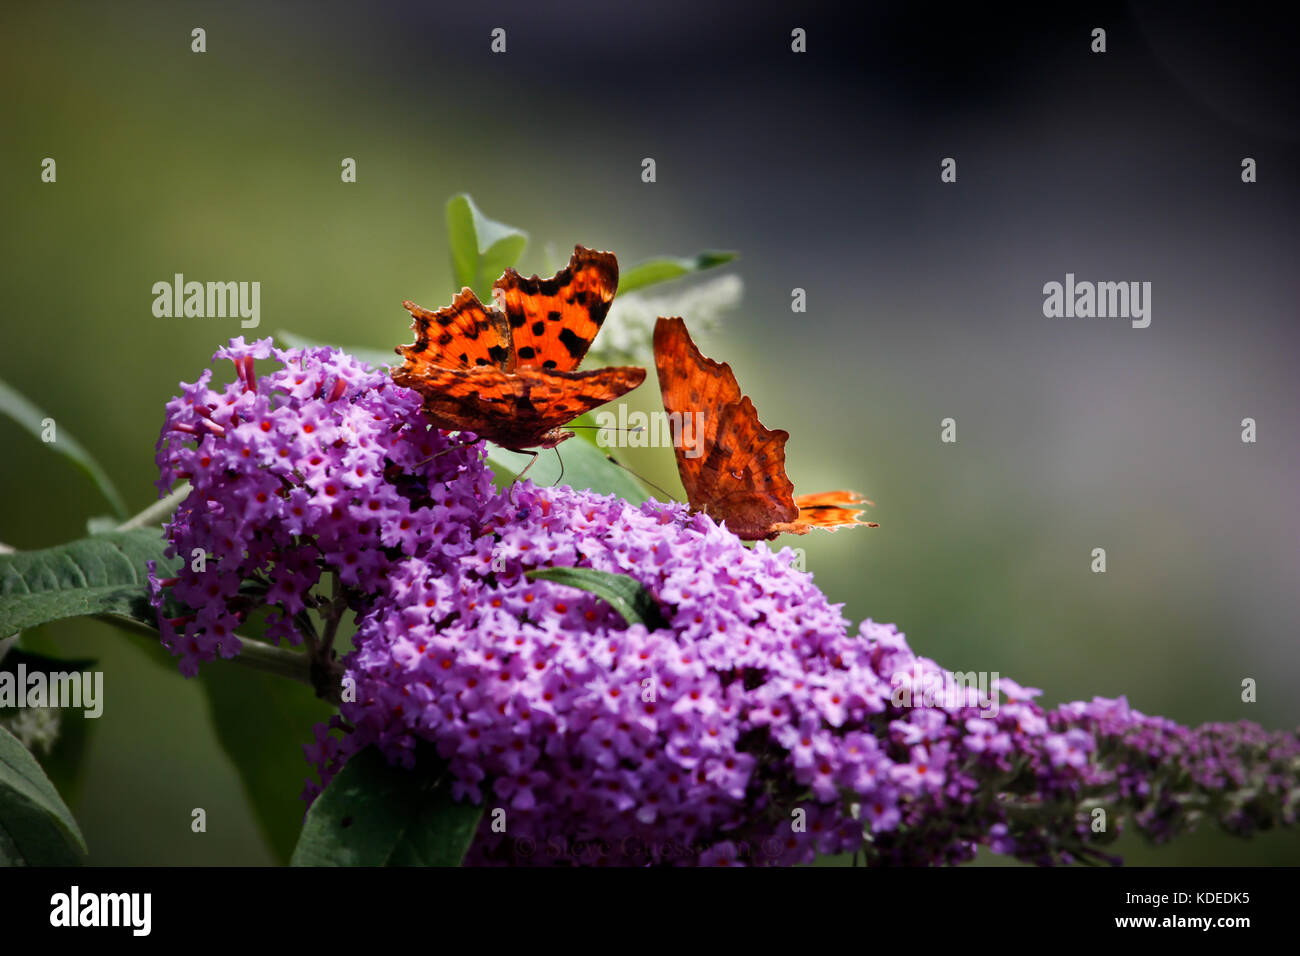 Butterfly feeding on nectar - Stock Image